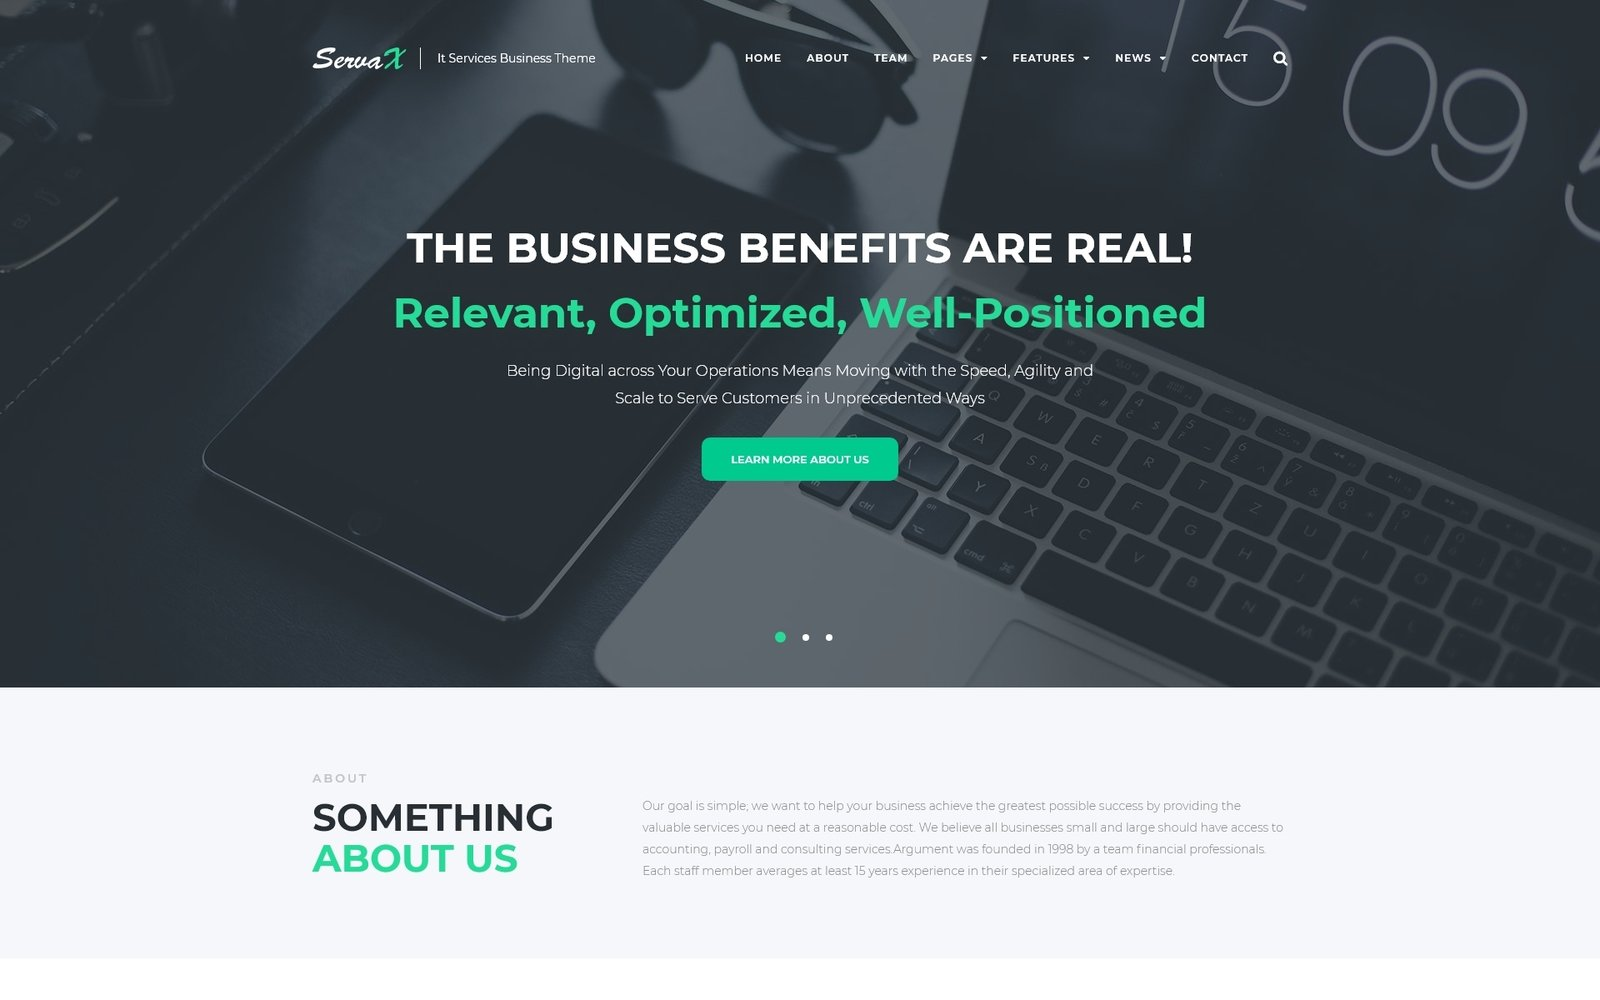 ServaX - IT Services Business WordPress Theme - screenshot